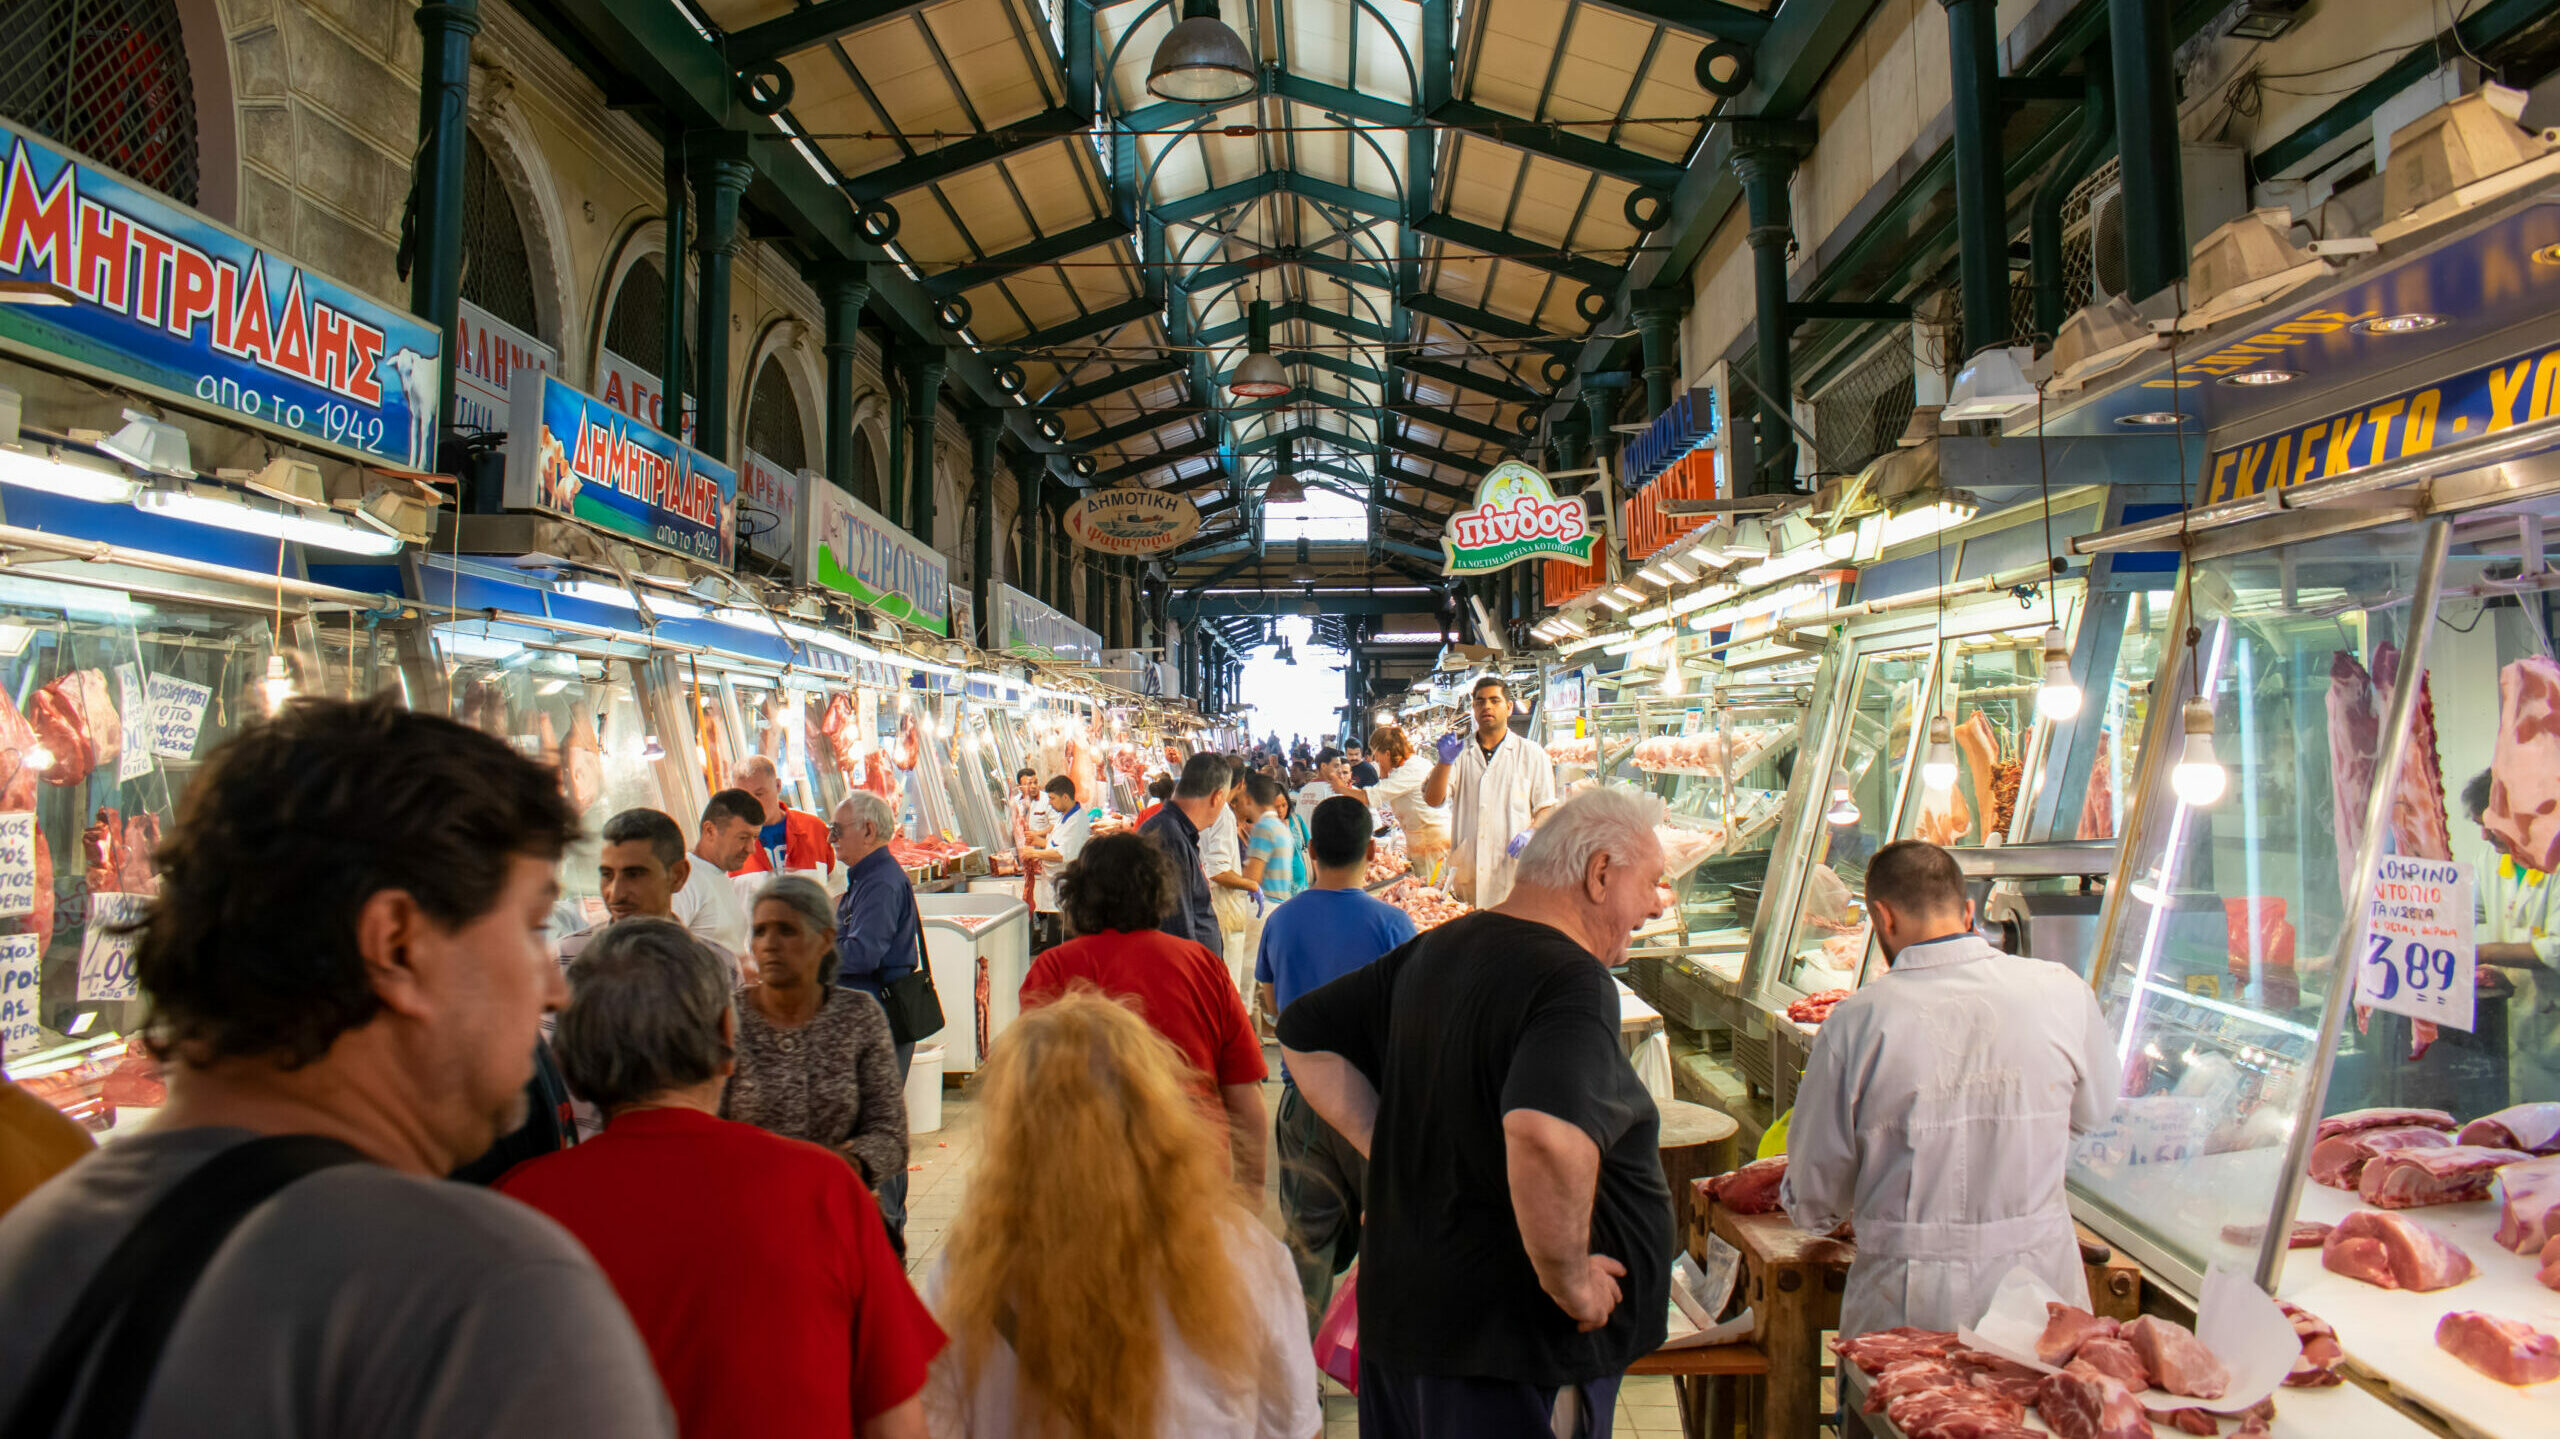 """The Varvakeios market: the story behind the """"stomach of Athens"""""""